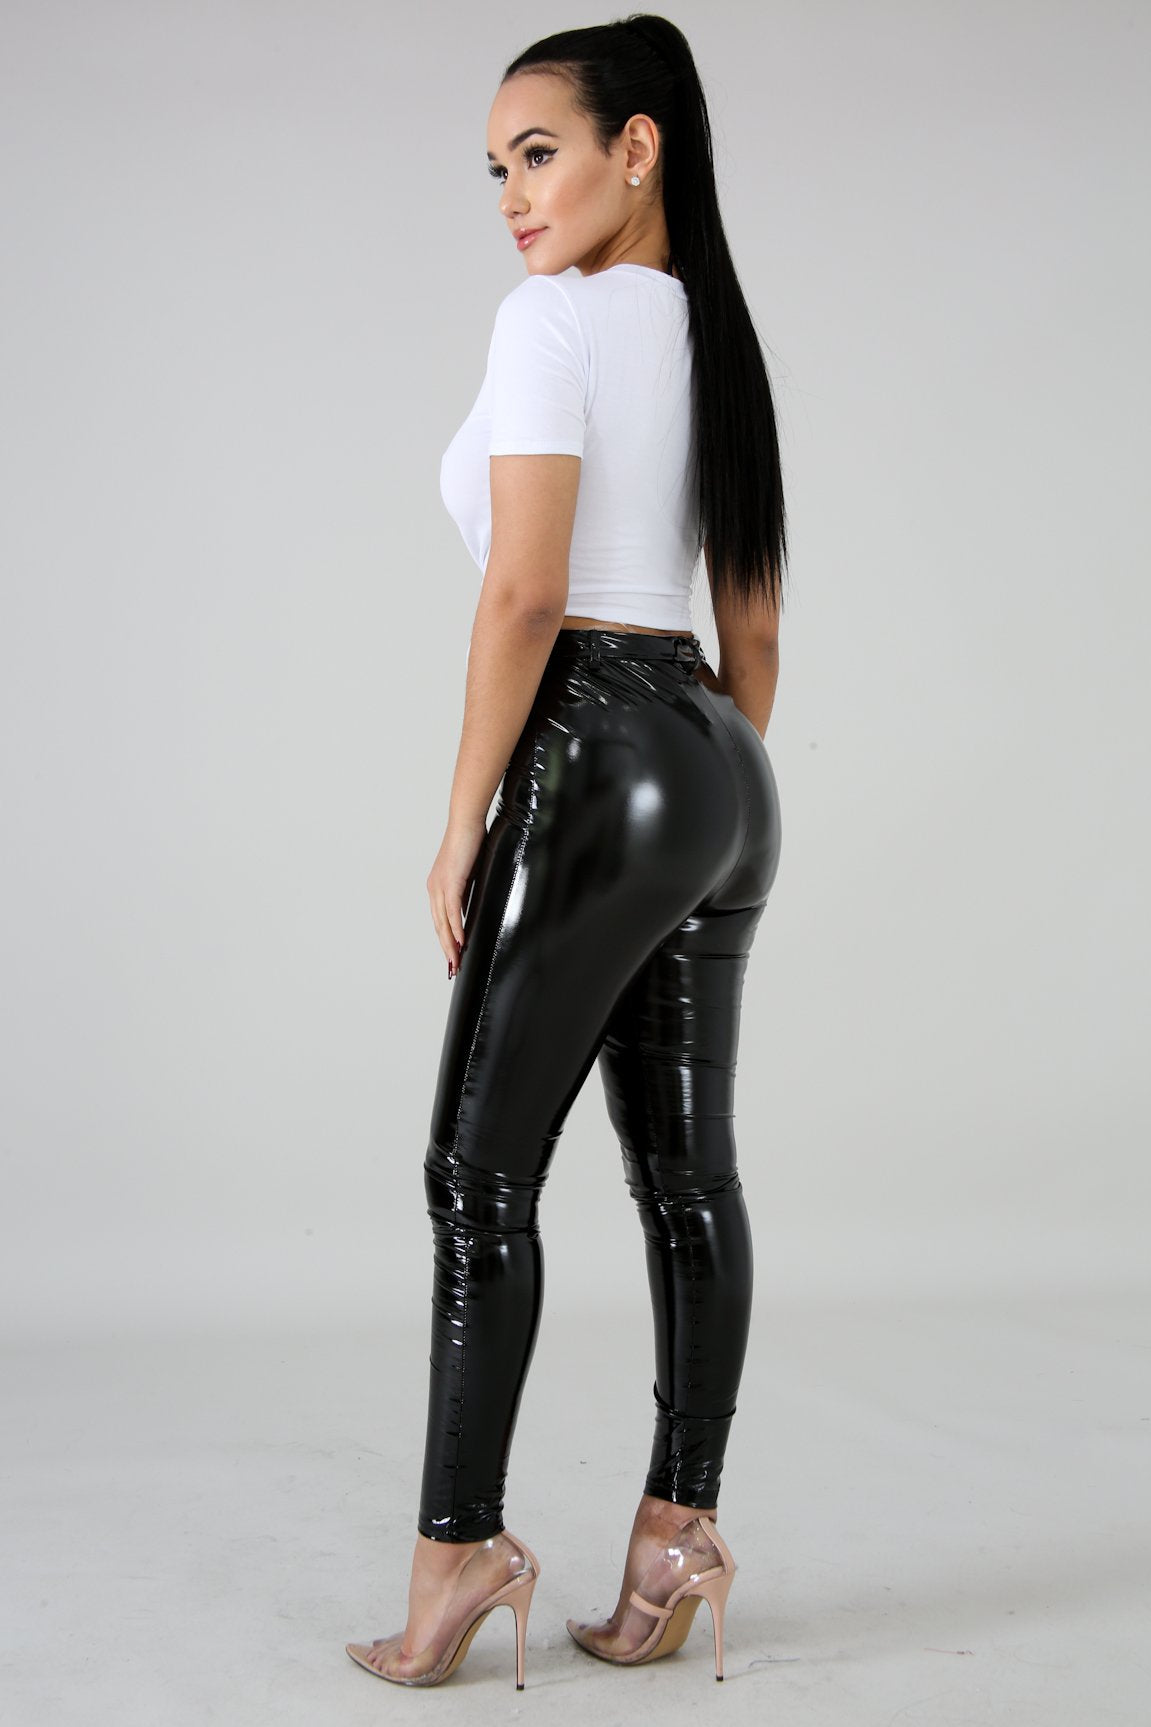 Black Latex Stretchy Zipper High Waist Pants Fit Miami Style